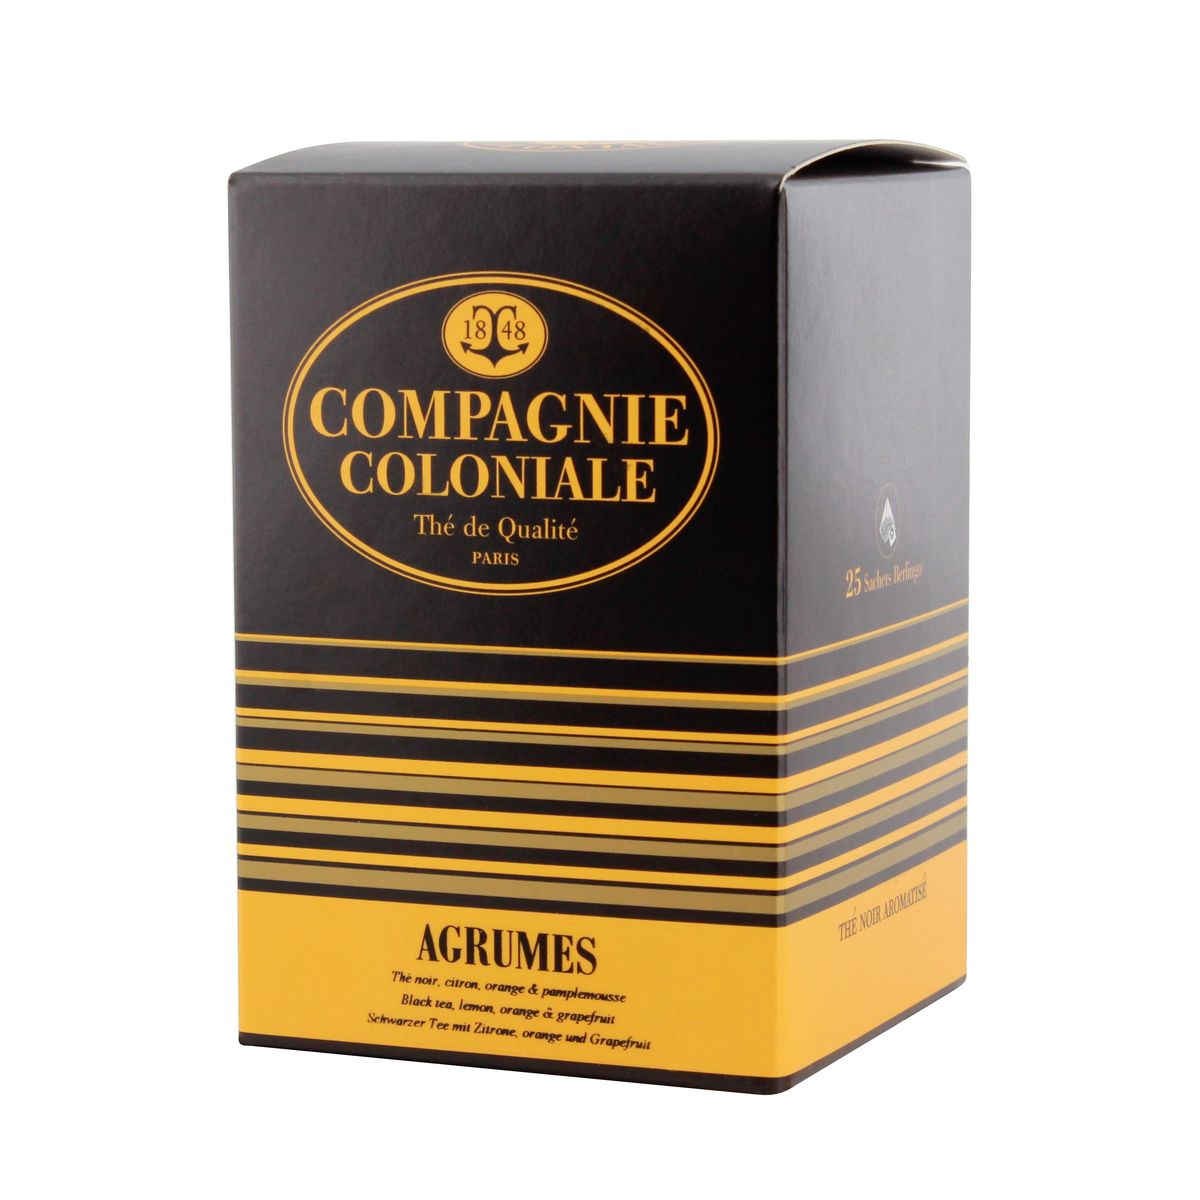 THE NOIR AROMATISE 25 BERLINGO AGRUMES - COMPAGNIE COLONIALE